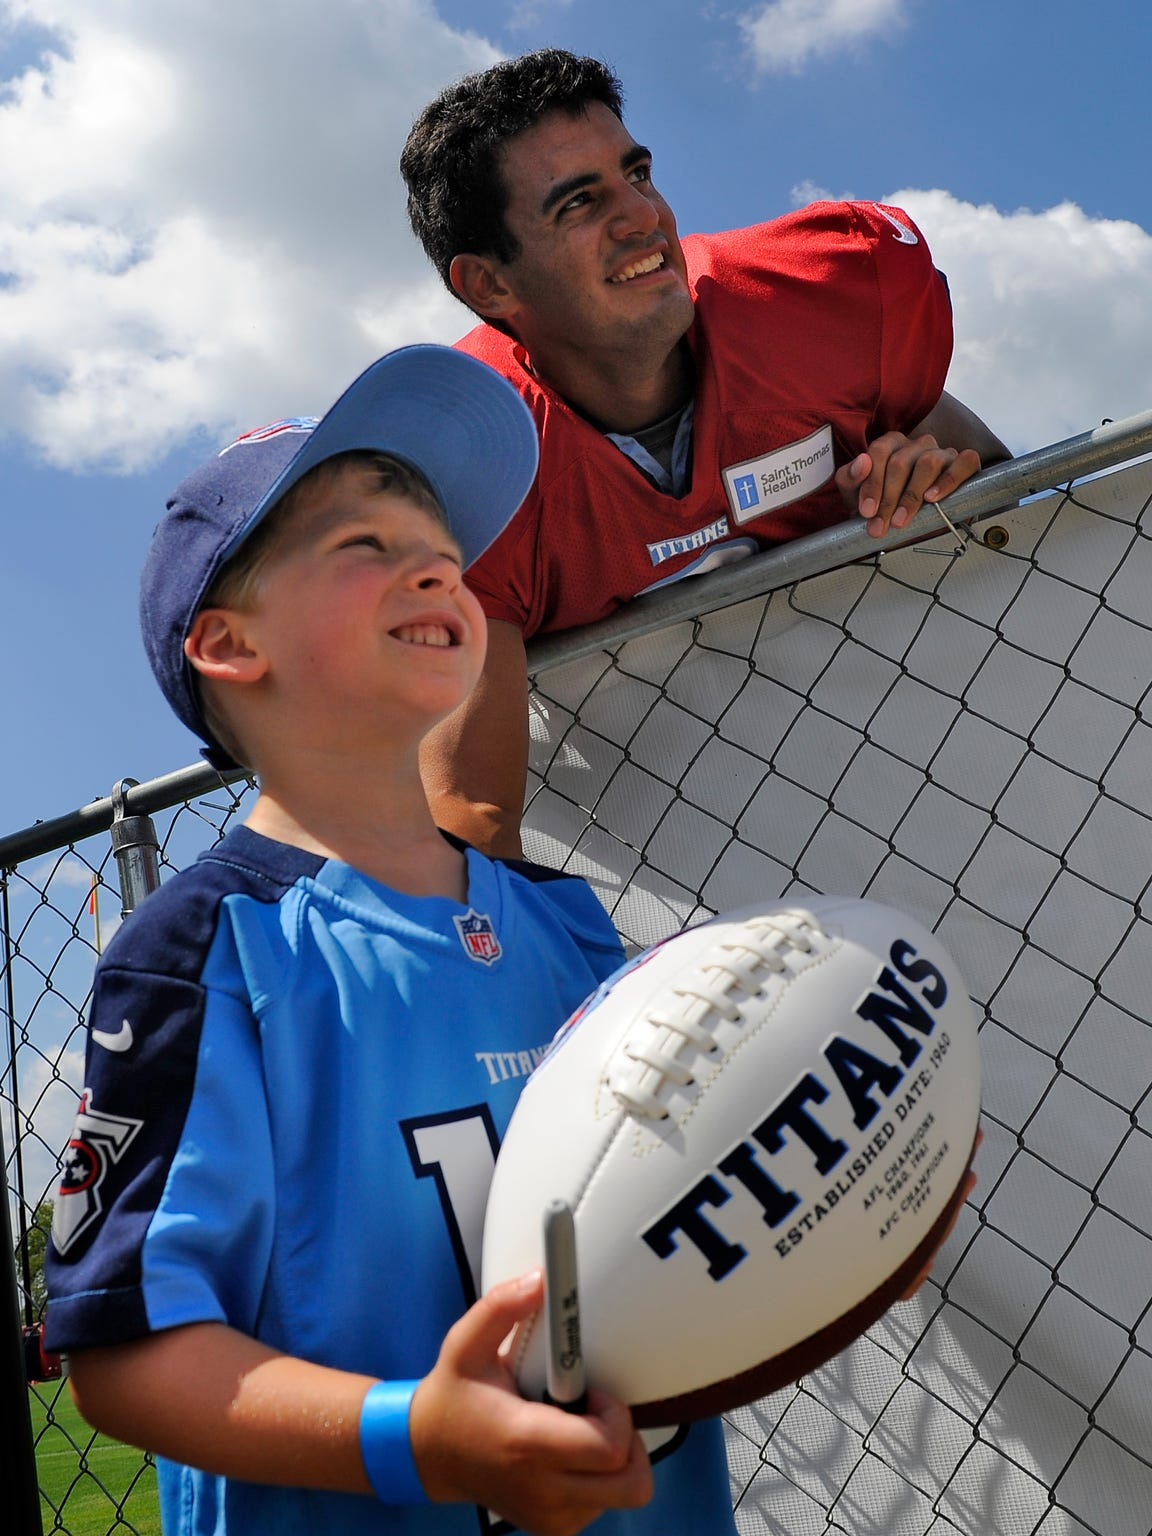 Cayden Lewis 5, of Hendersonville, gets a photo with Mariota after practice at St. Thomas Sports Park on Aug. 11.